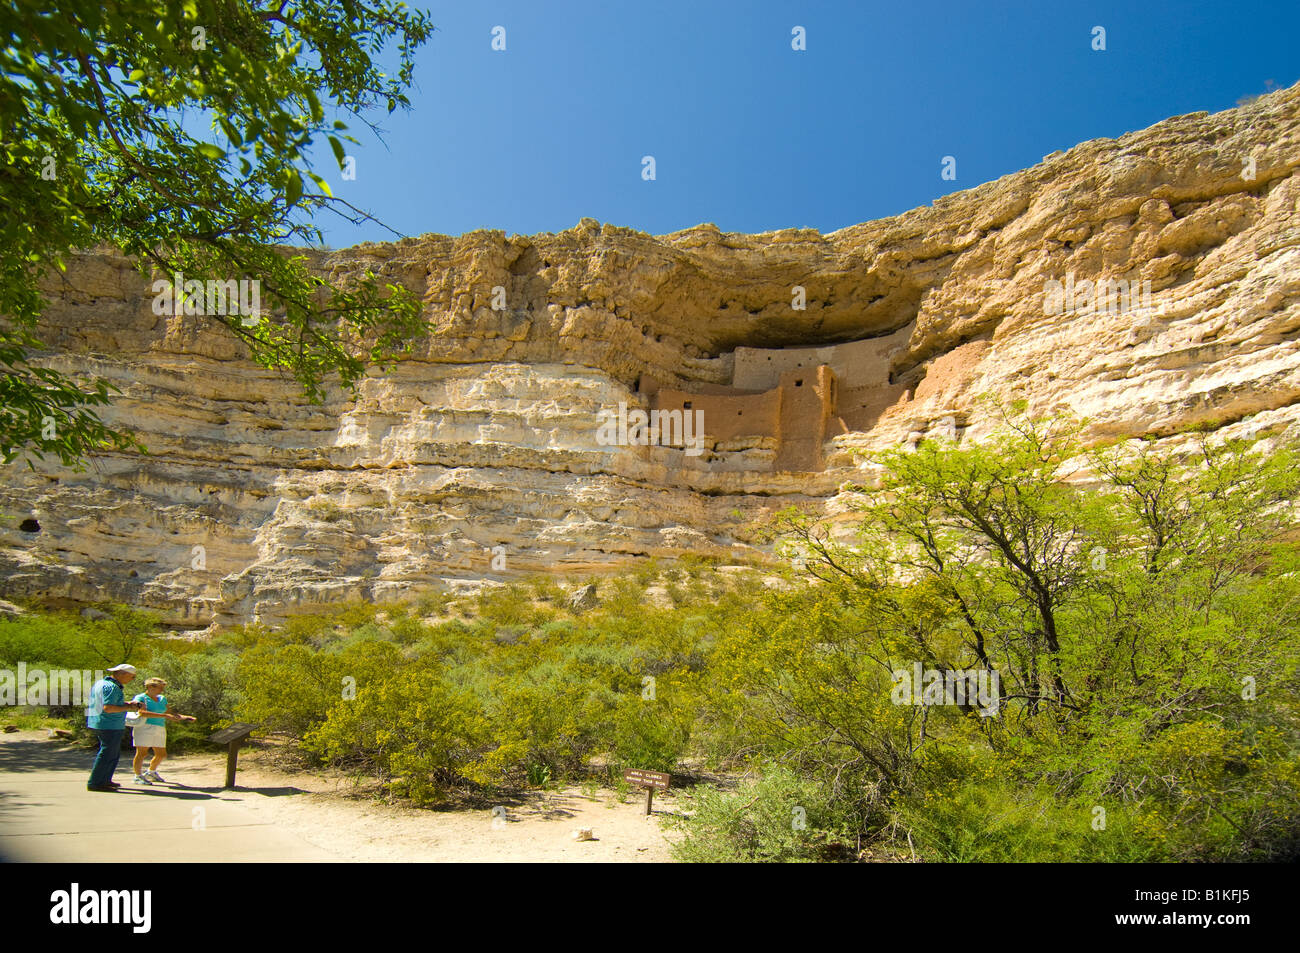 Cliff dwellings in a limestone cliff at Montezuma's Castle  National Monument near Campe Verde Arizona - Stock Image